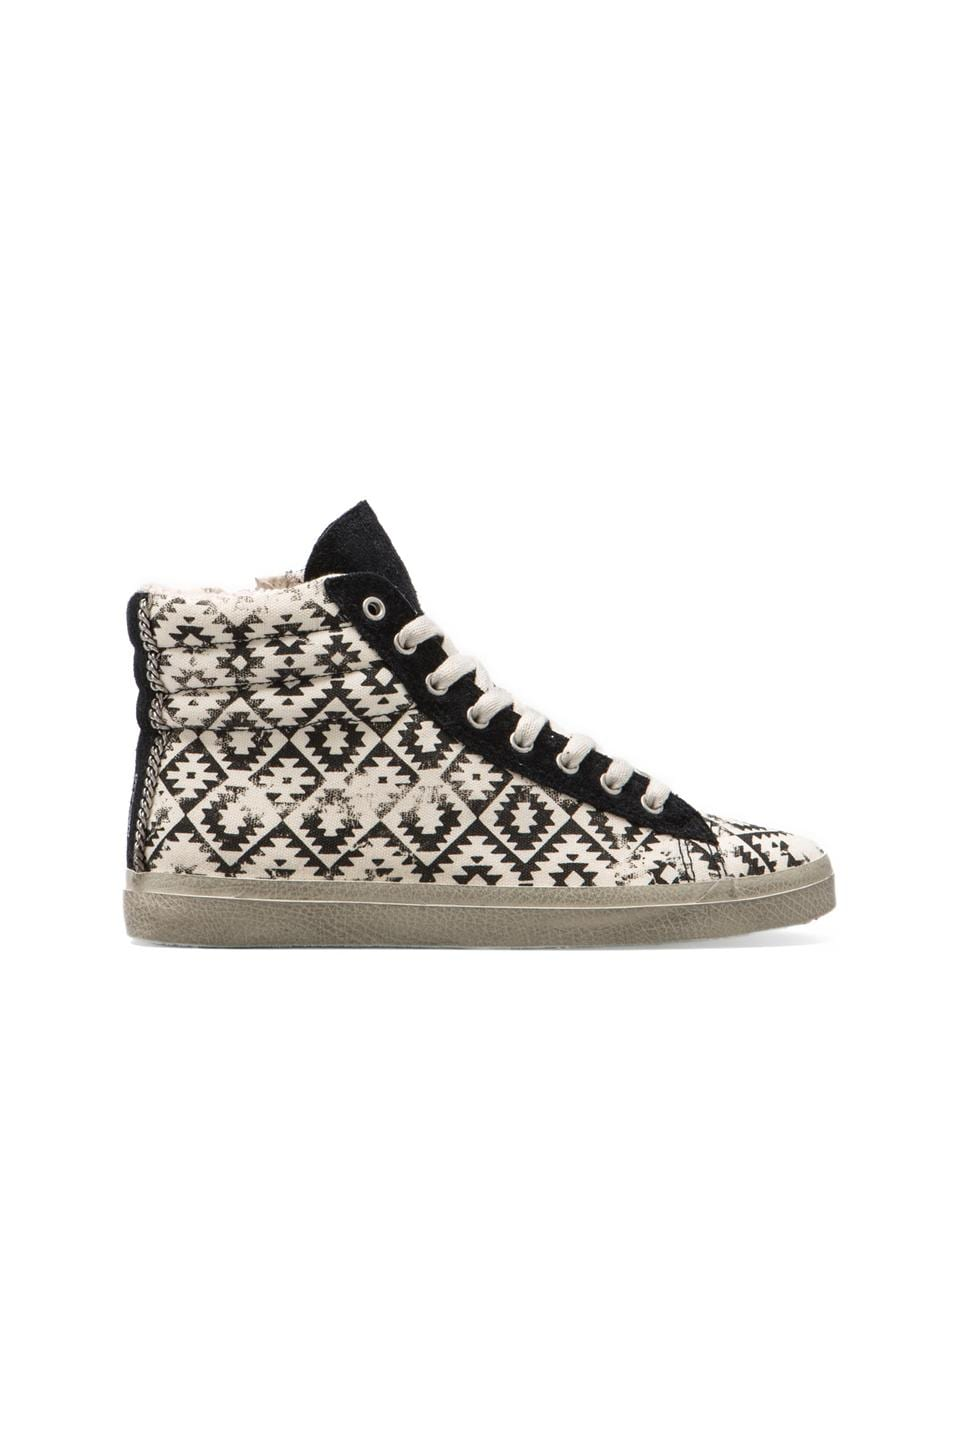 KIM & ZOZI Gypster Sneaker in Black